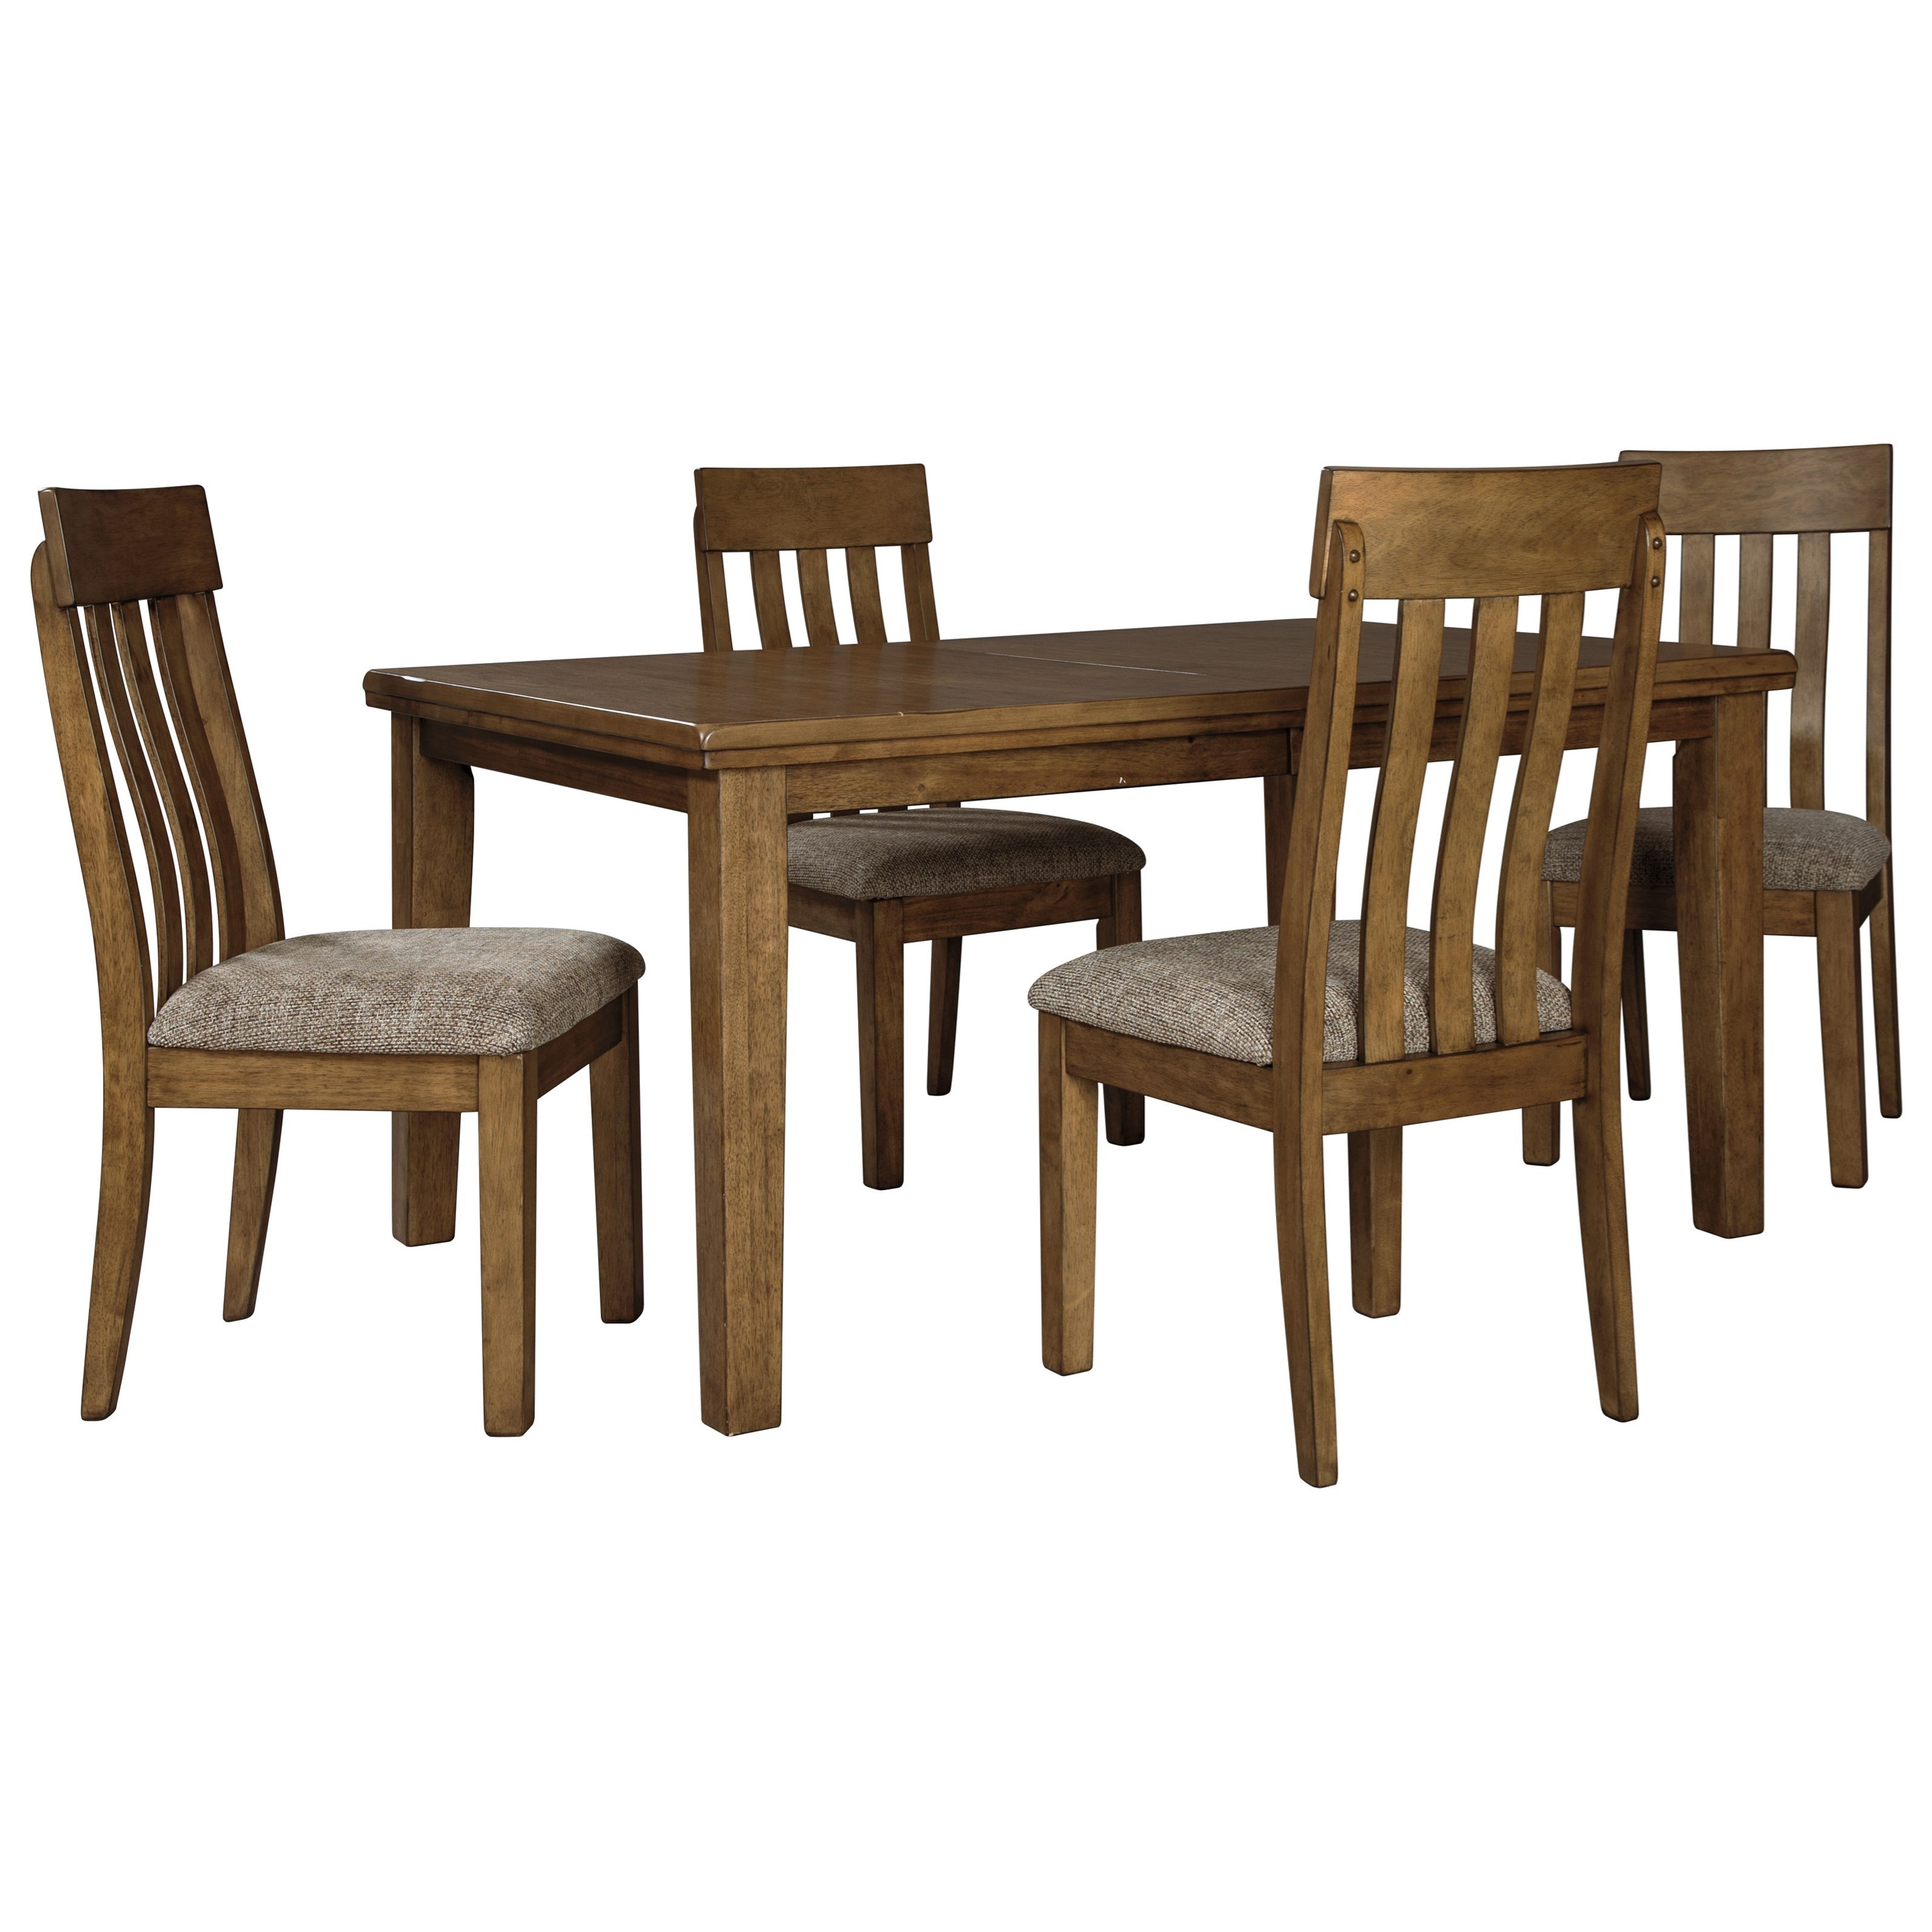 Flaybern 5-Piece Dining Set by Benchcraft at HomeWorld Furniture